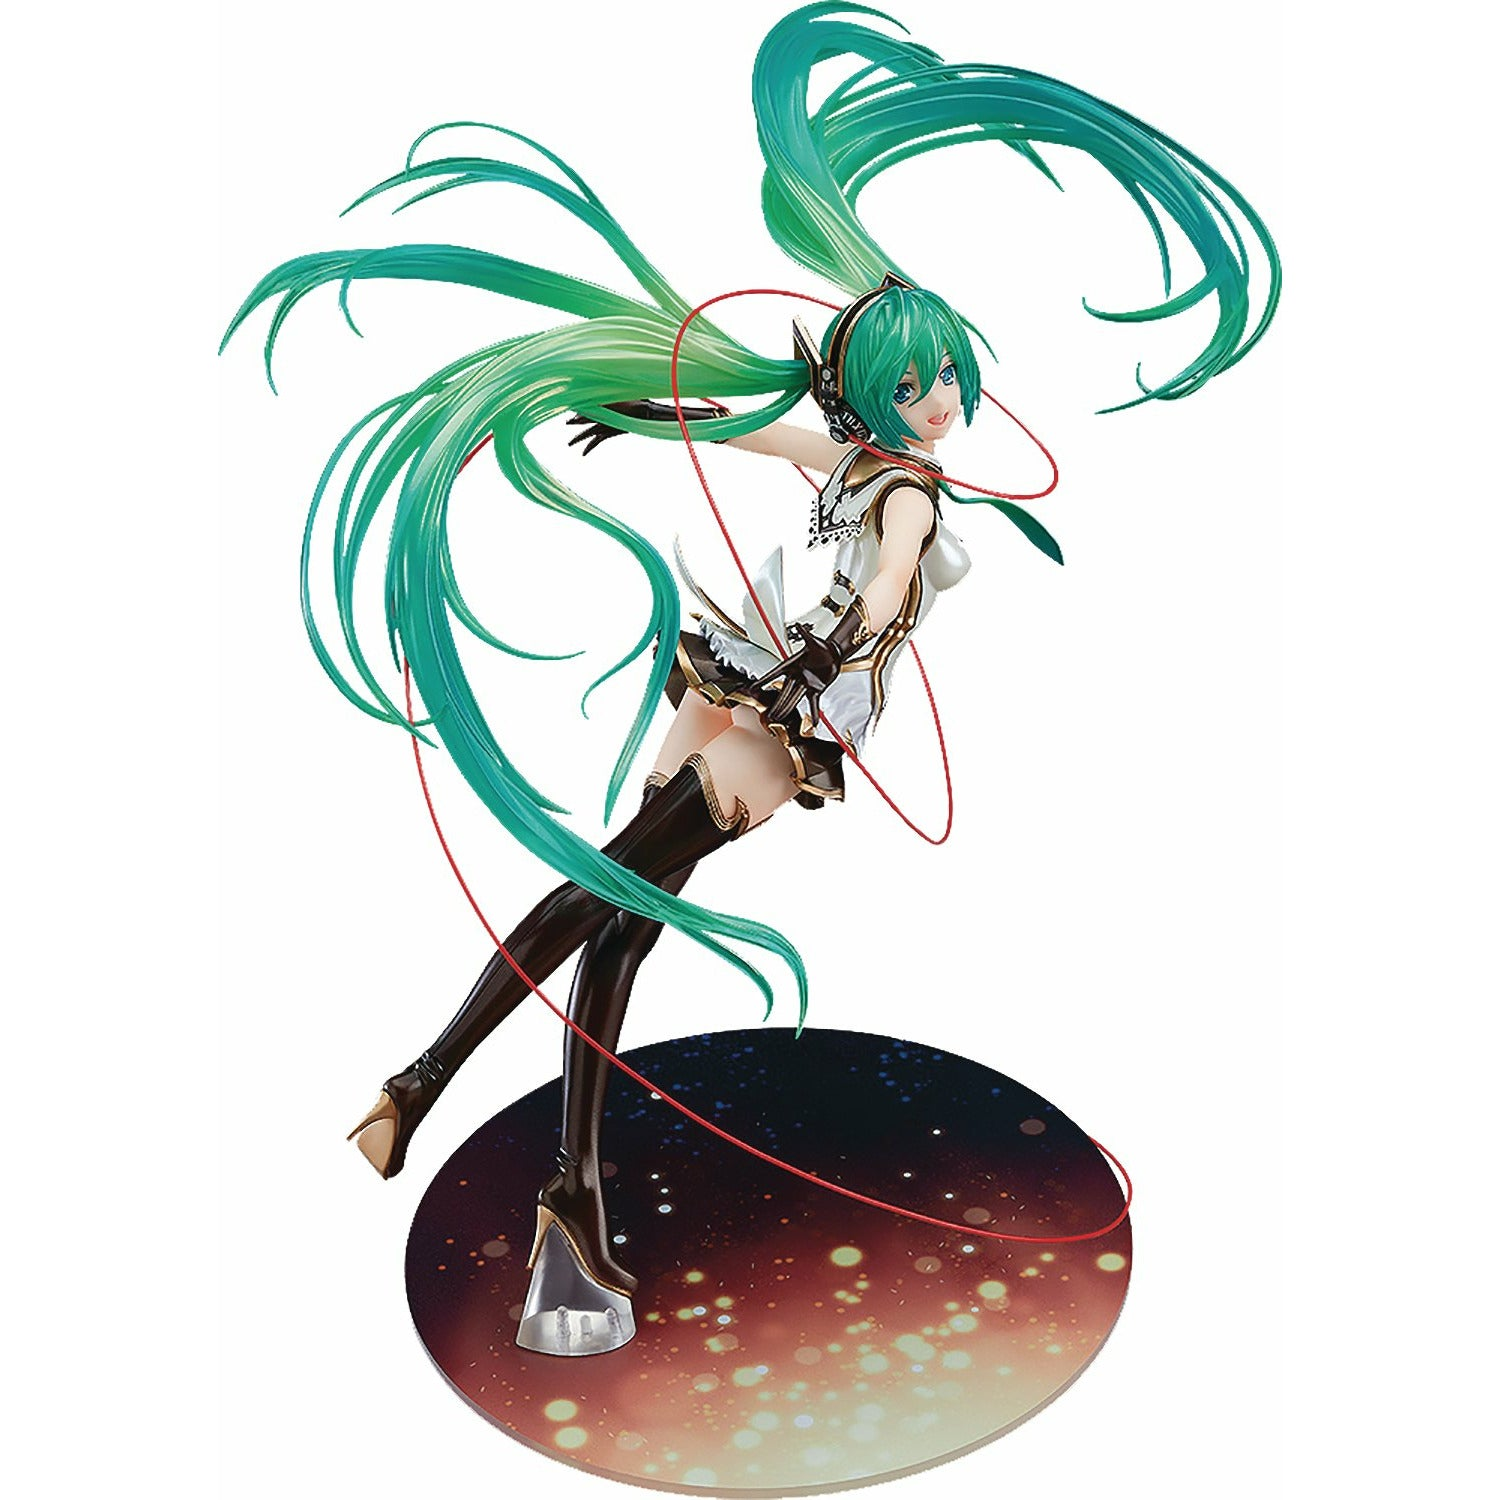 Rage of Bahamut Hatsune Miku Winter Heroine Ver. 1/8 Scale Figure